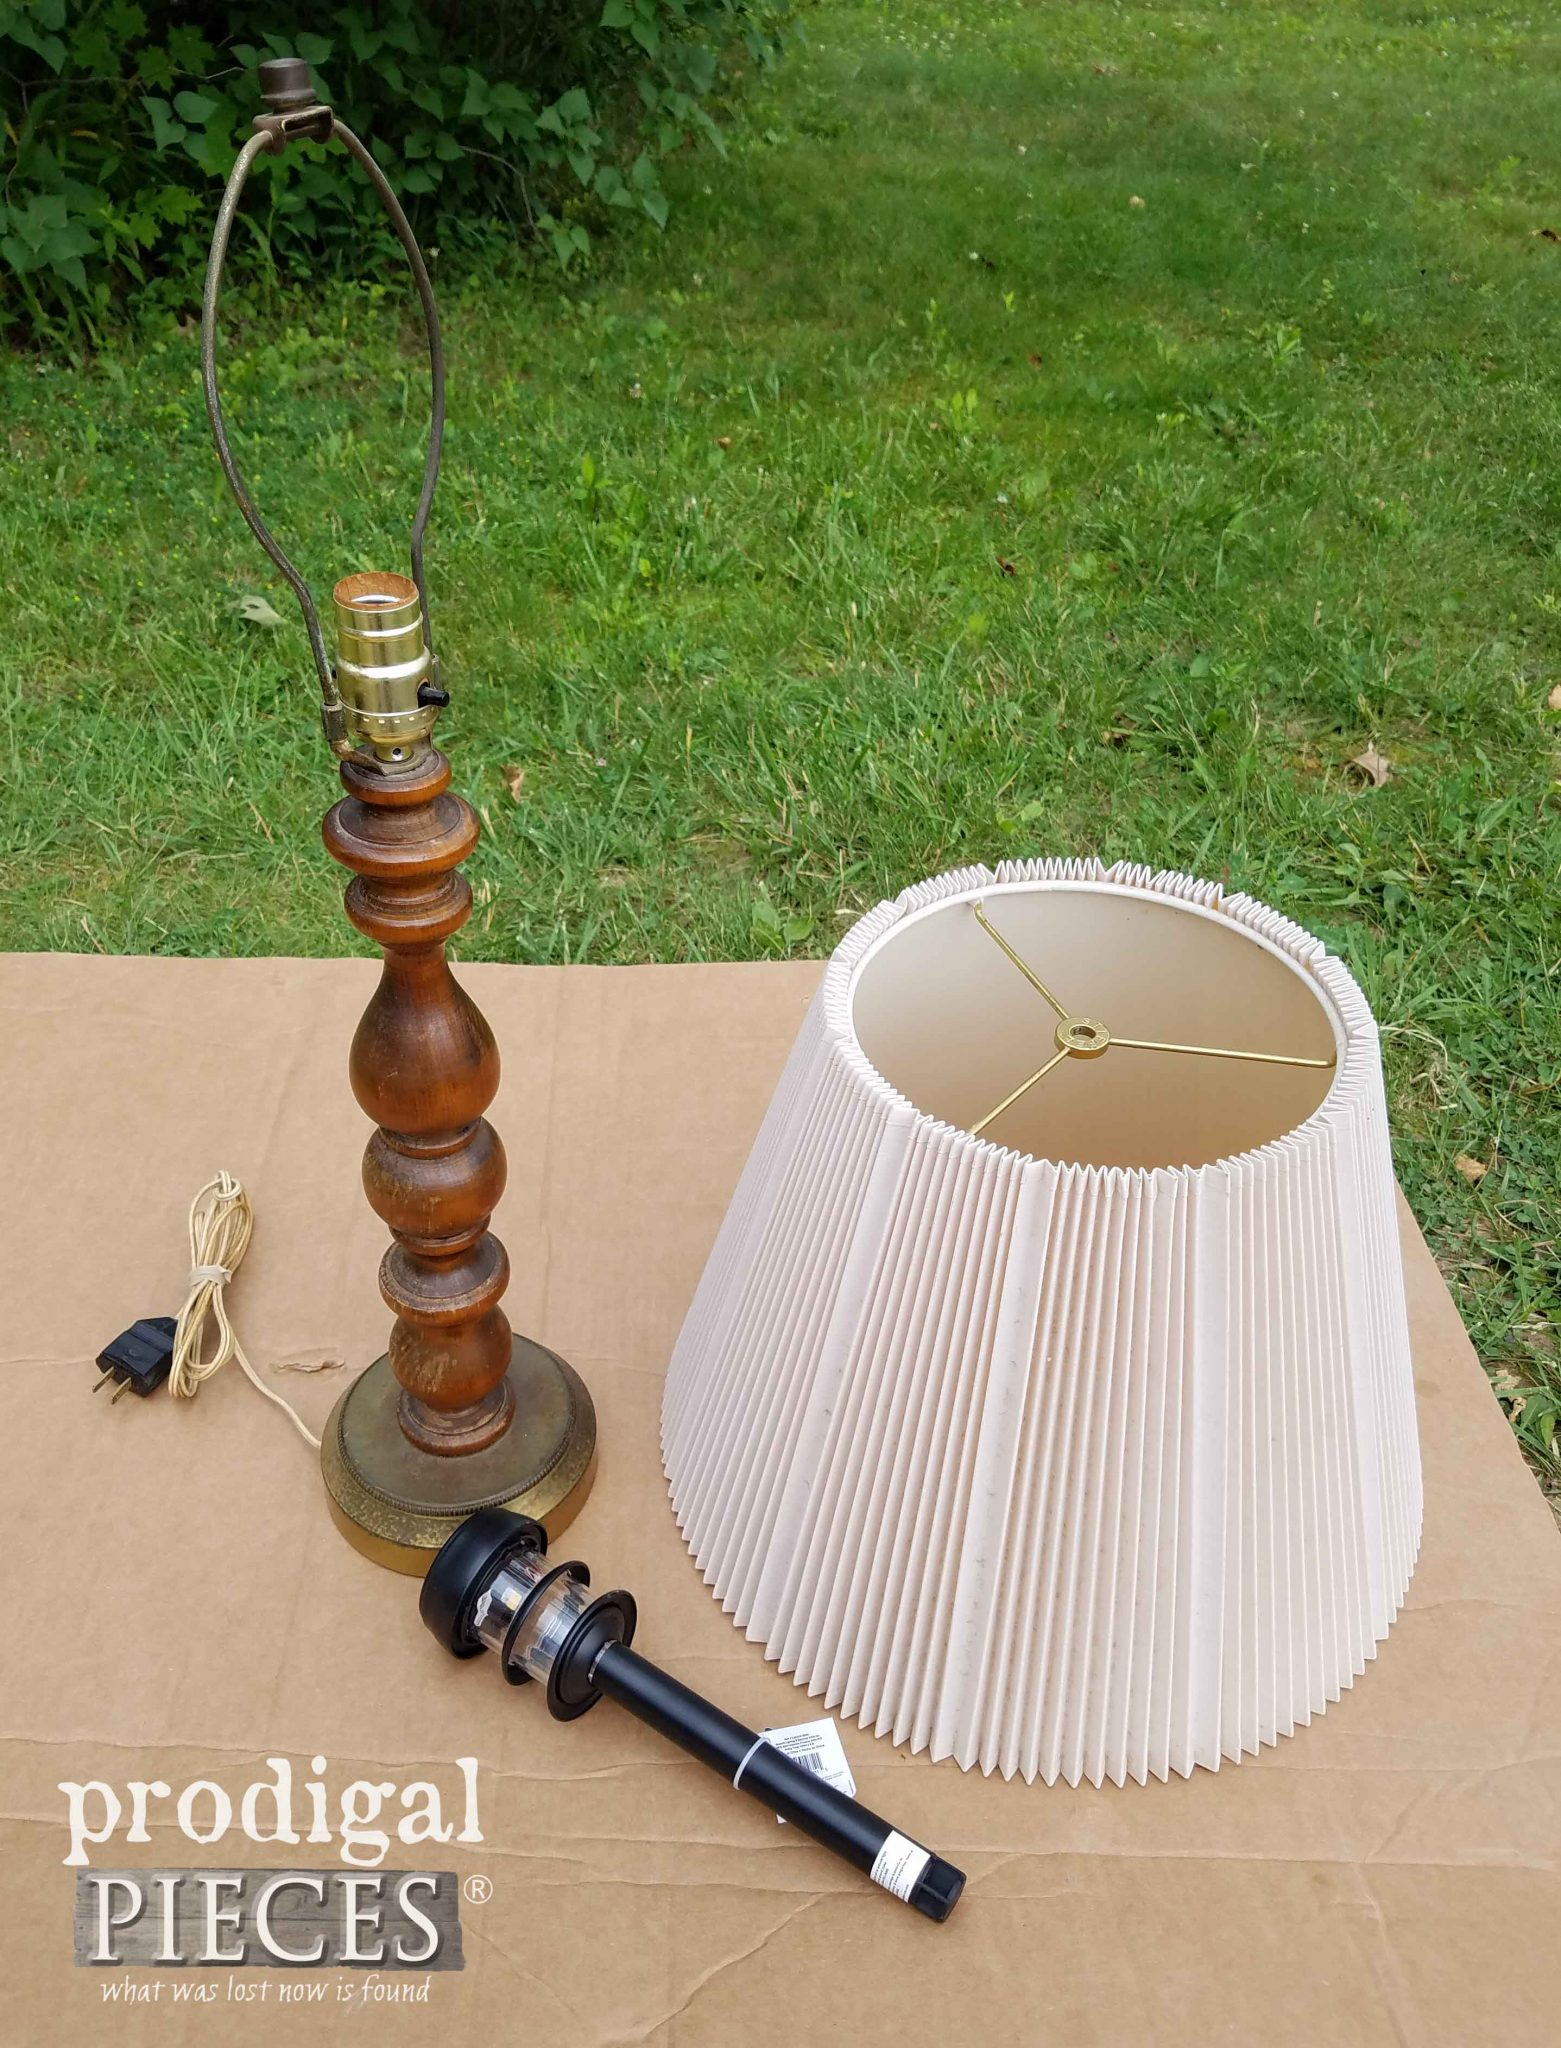 Supplies to make a DIY Solar Lamp by Prodigal Pieces | prodigalpieces.com